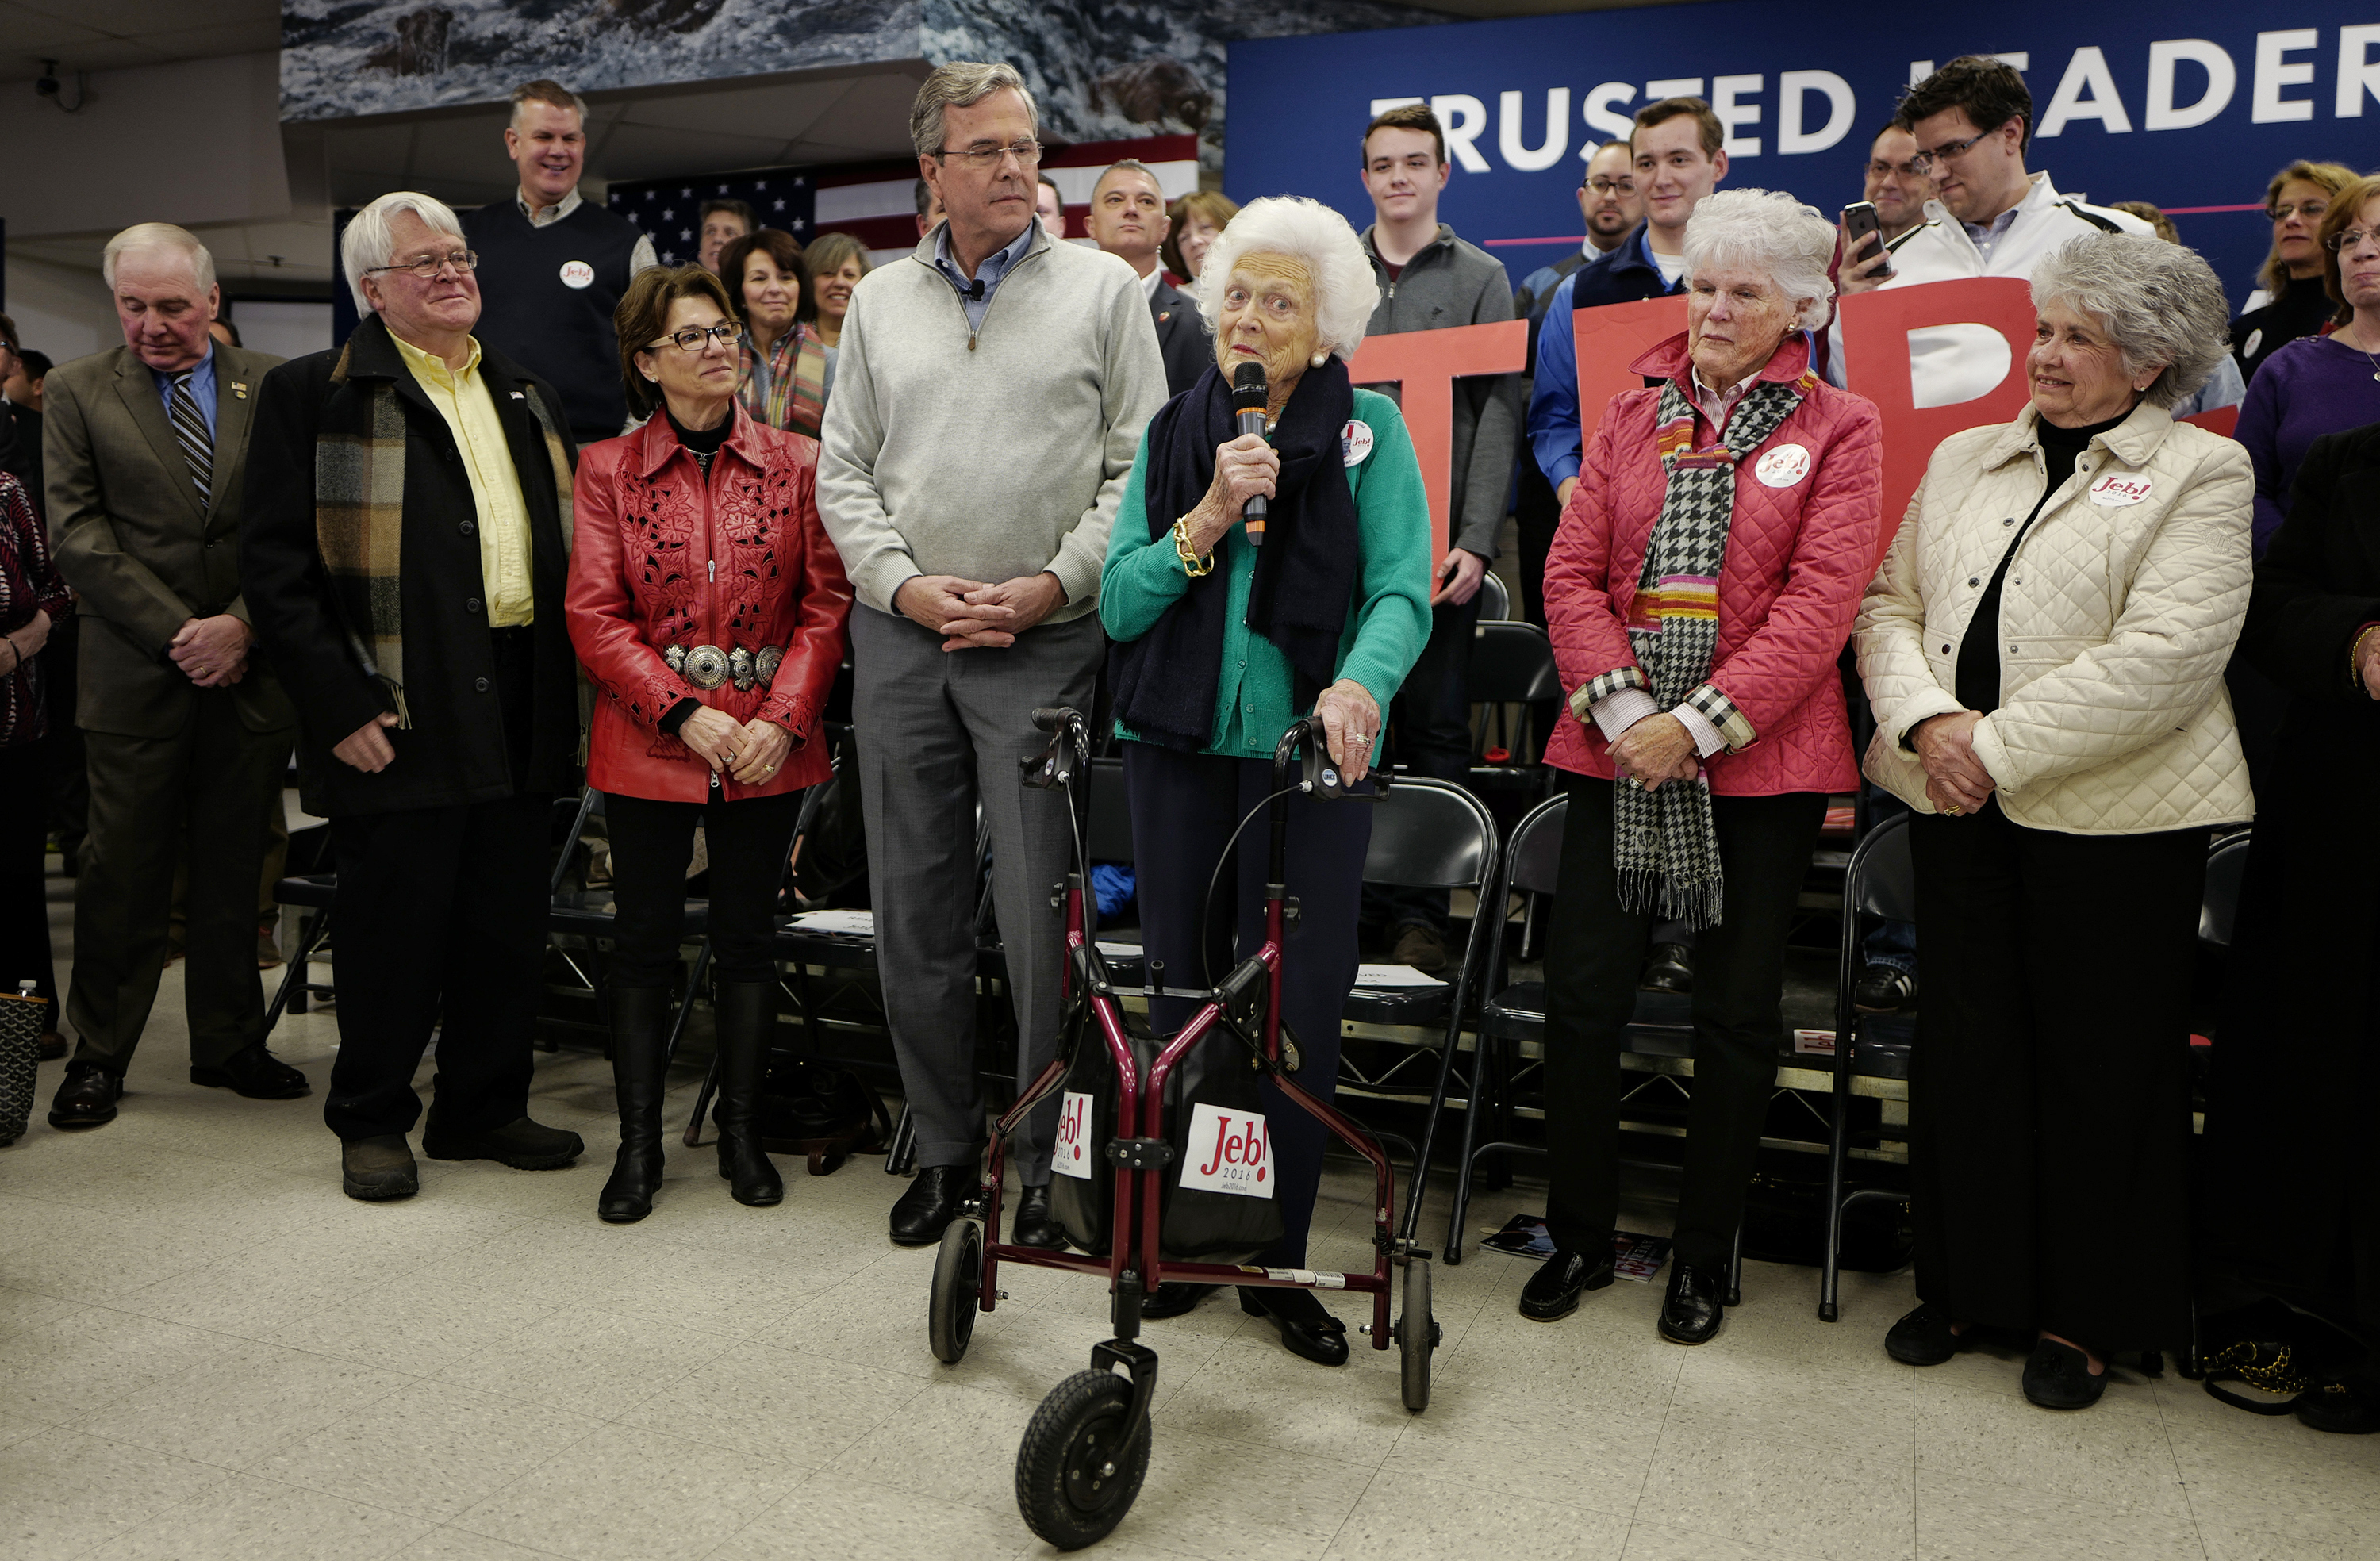 Barbara Bush introduces son Jeb at a town hall in Derry, N.H. on Feb. 4.